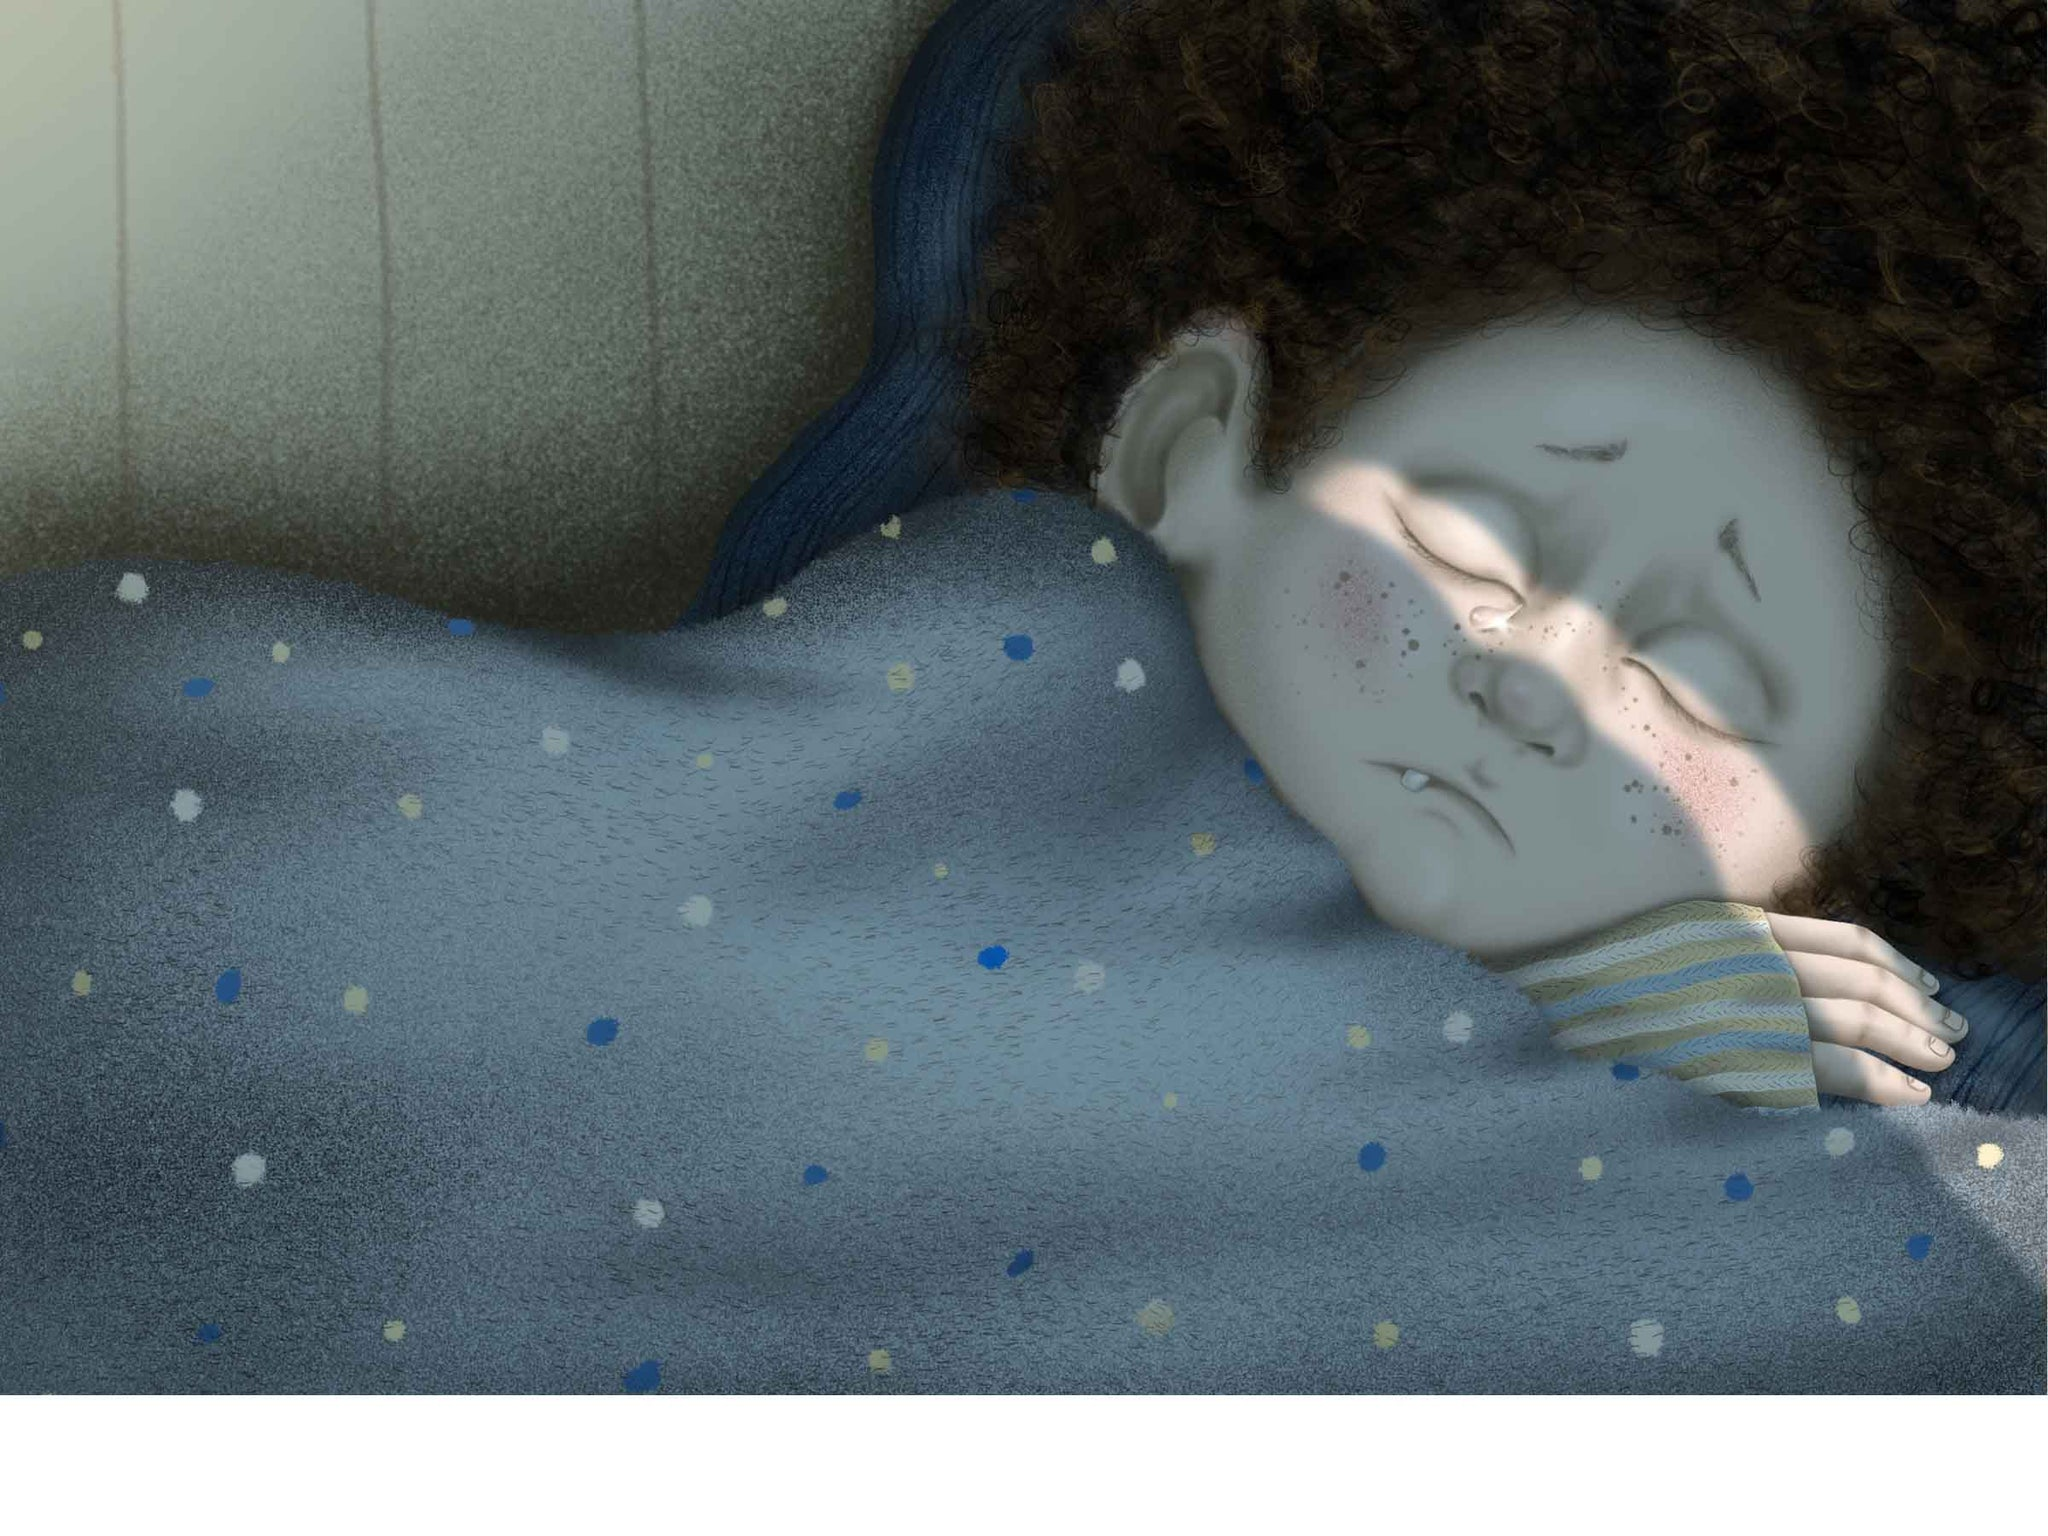 an illustration of a little boy lying in bed with eyes closed, a tear is falling down his face